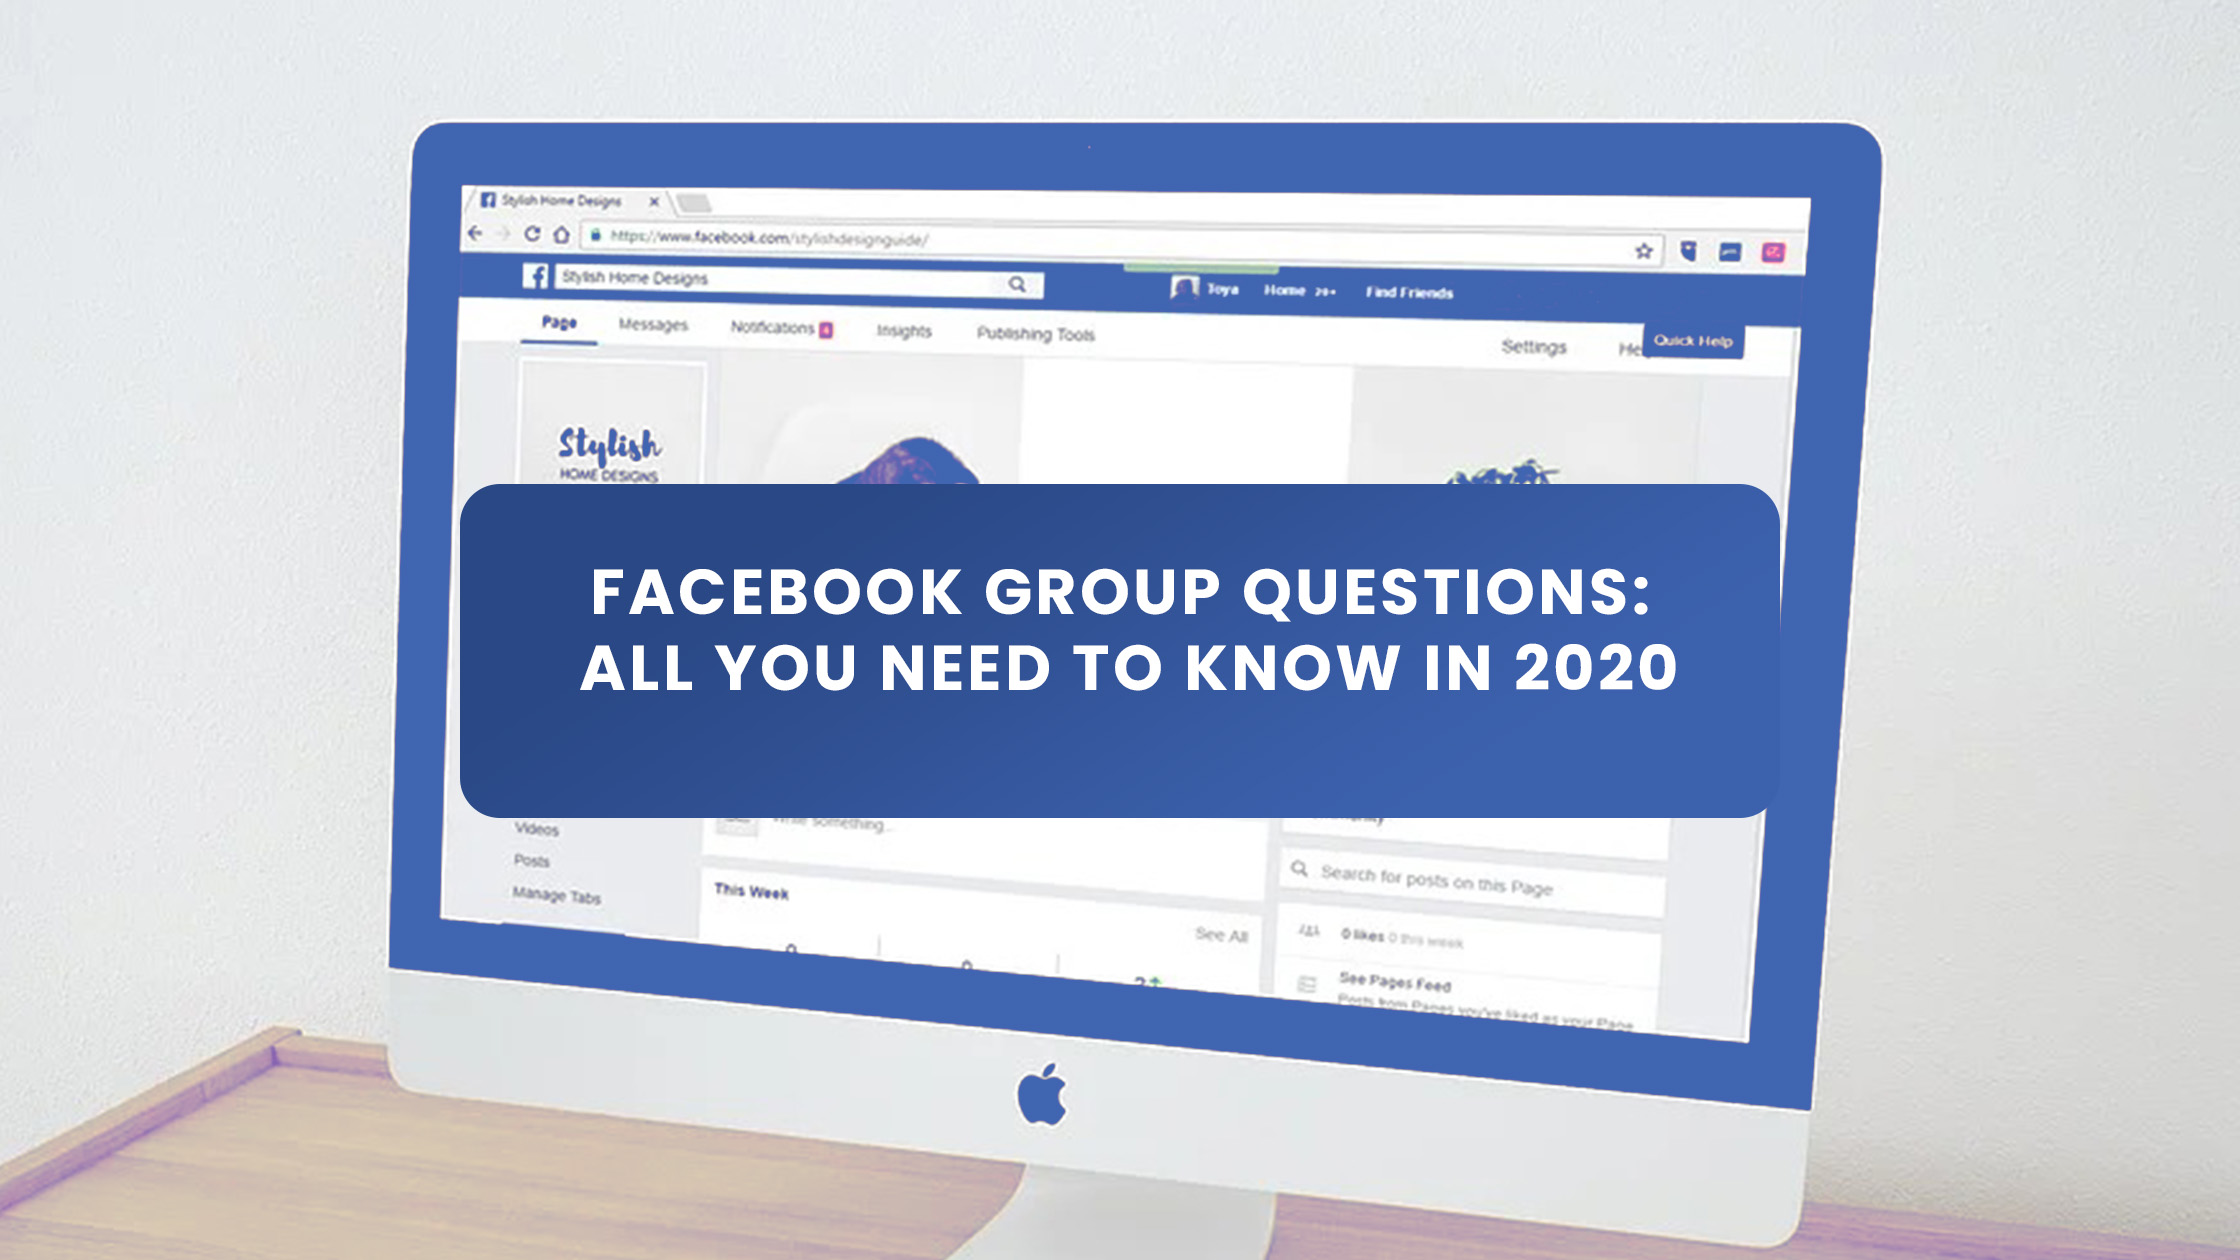 Facebook Group Questions: All You Need To Know In 2020